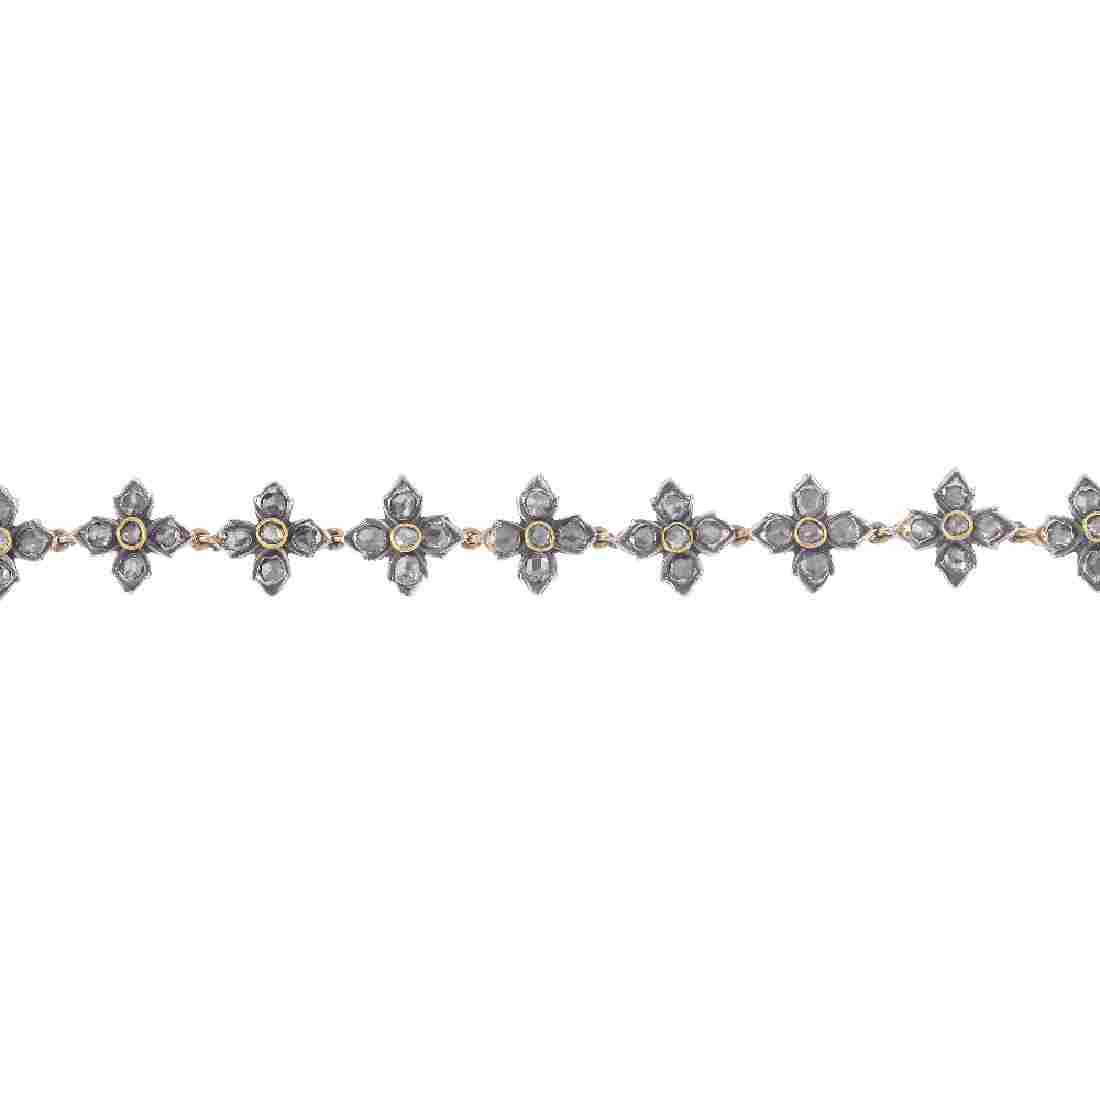 A foil-back diamond bracelet. Designed as a series of